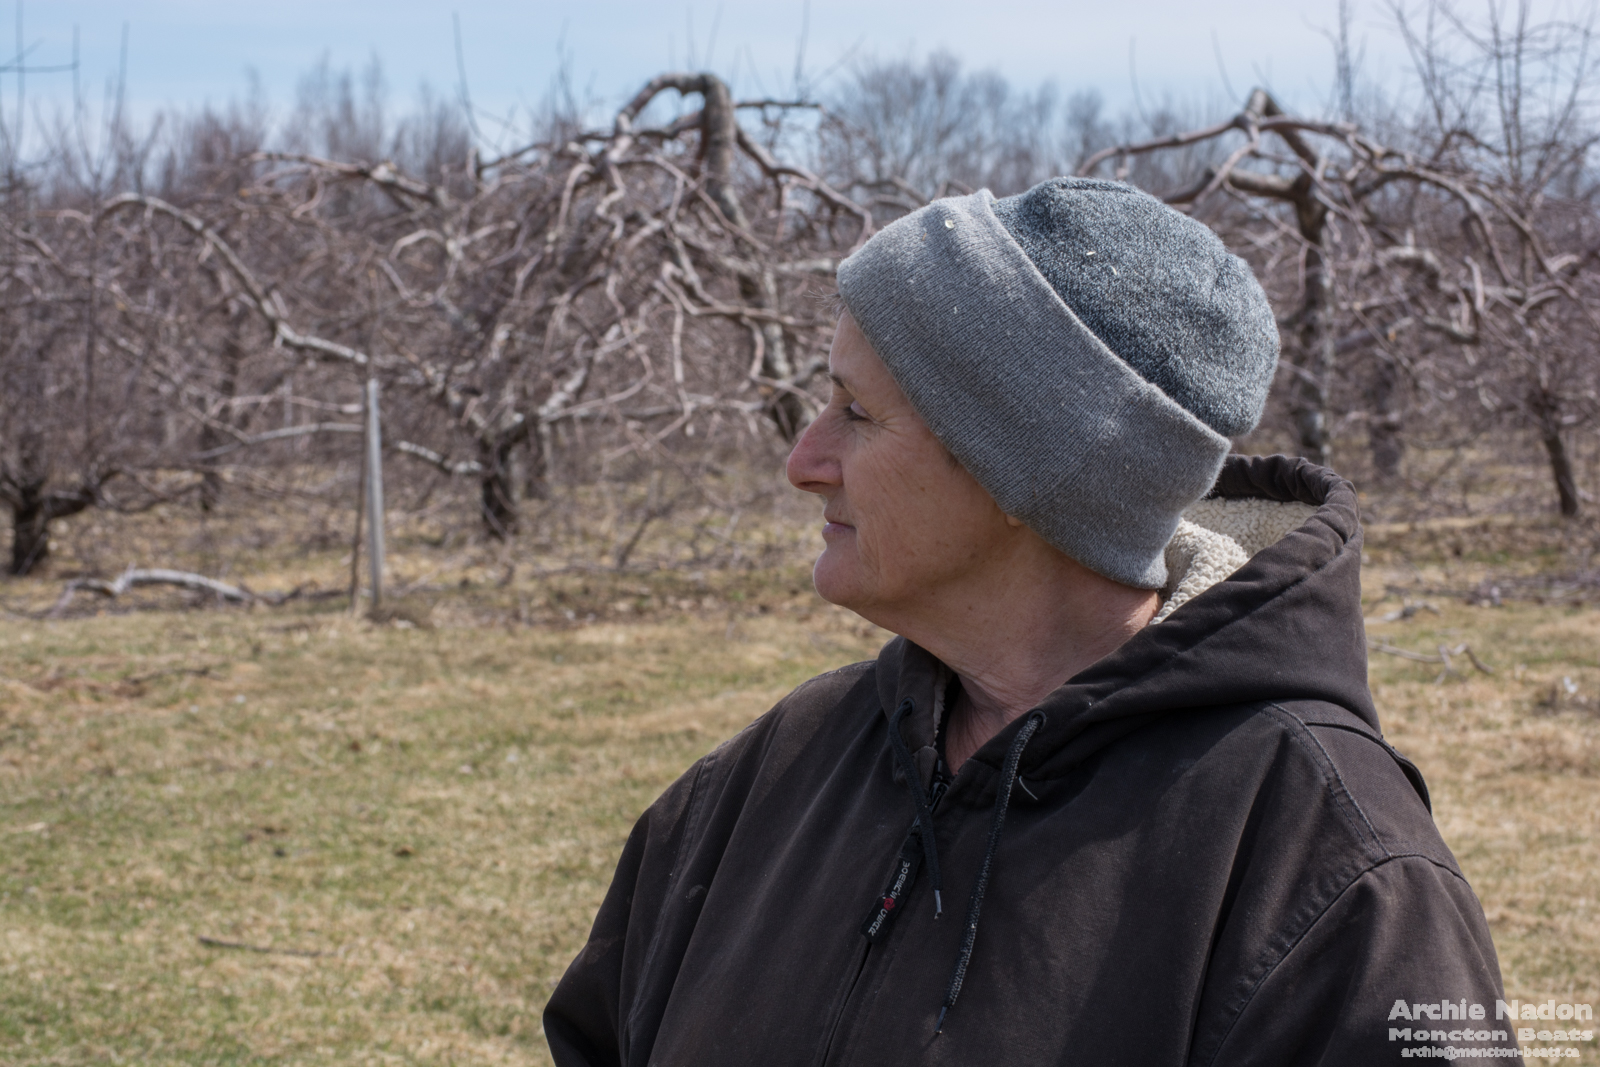 bernadette in the orchard